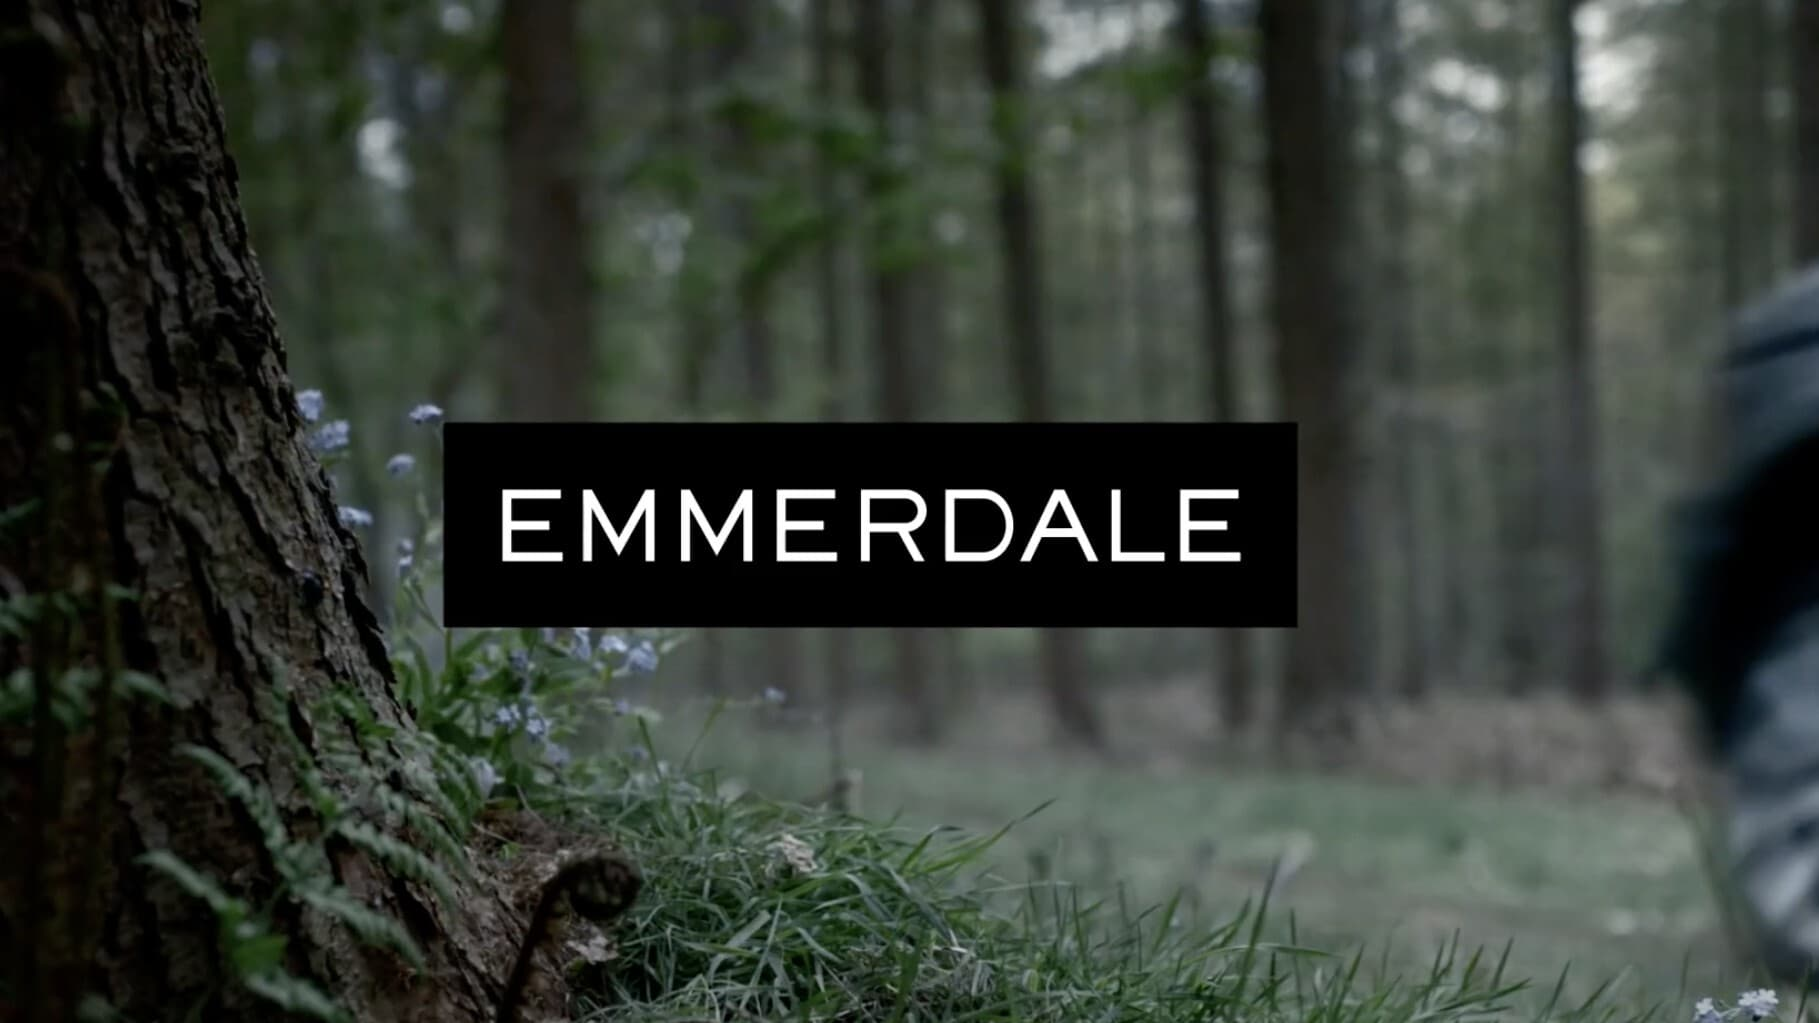 Emmerdale - Season 36 Episode 236 : October 16, 2007